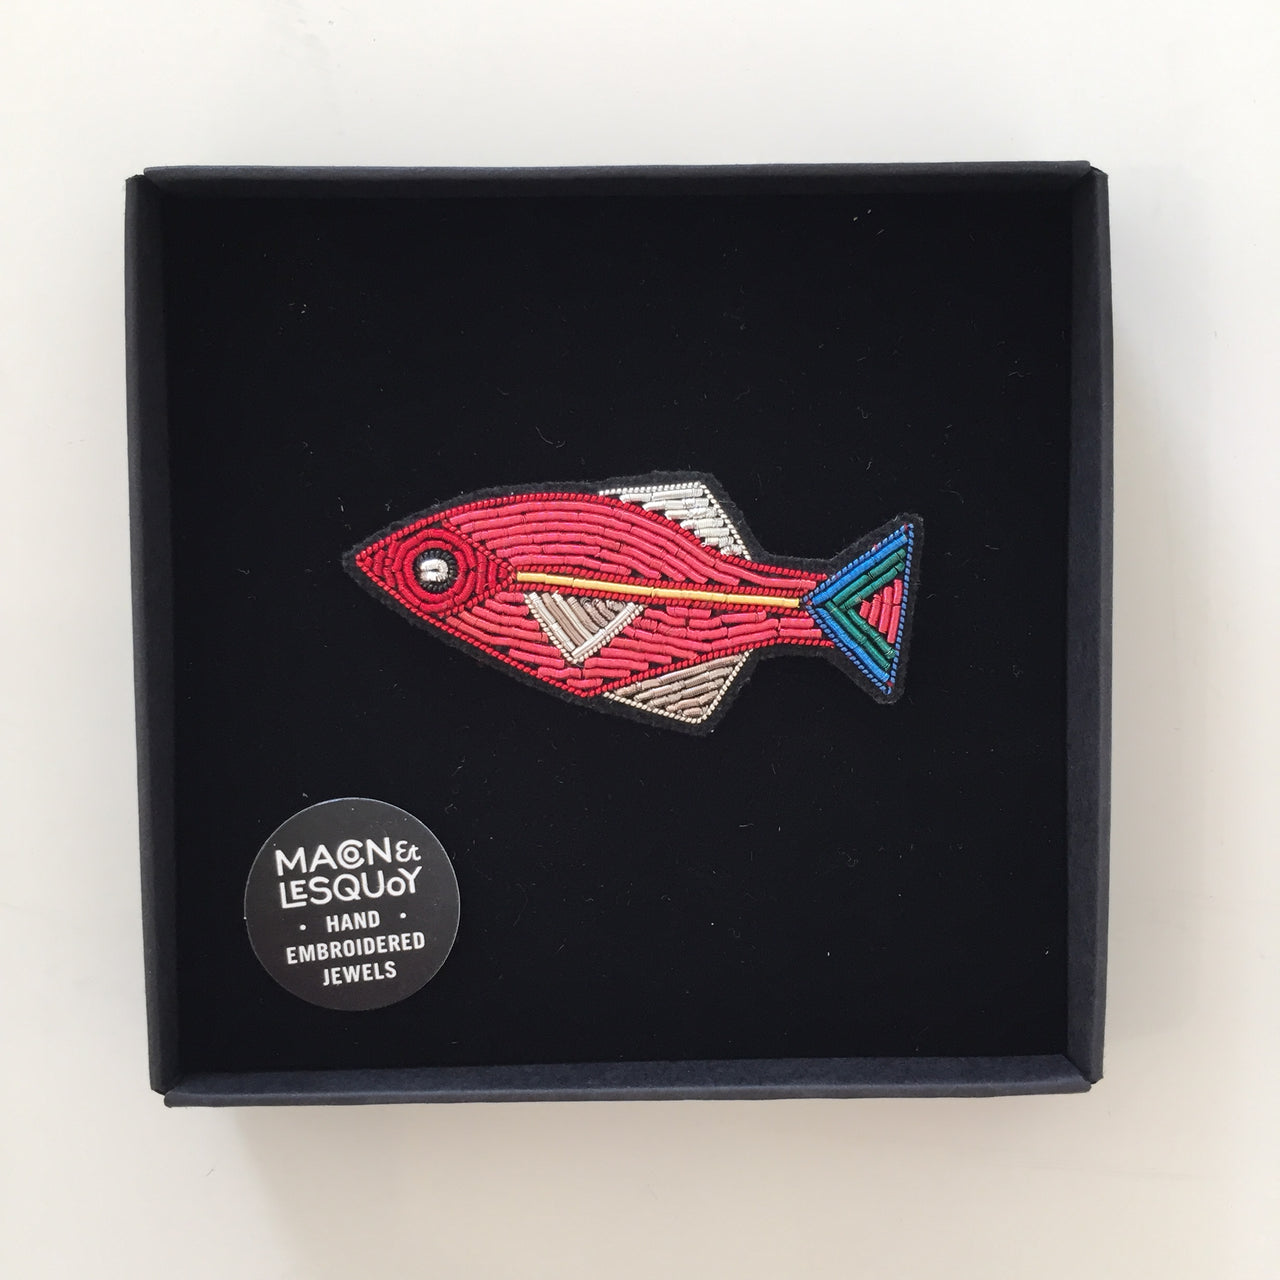 Salmon Fish Pin